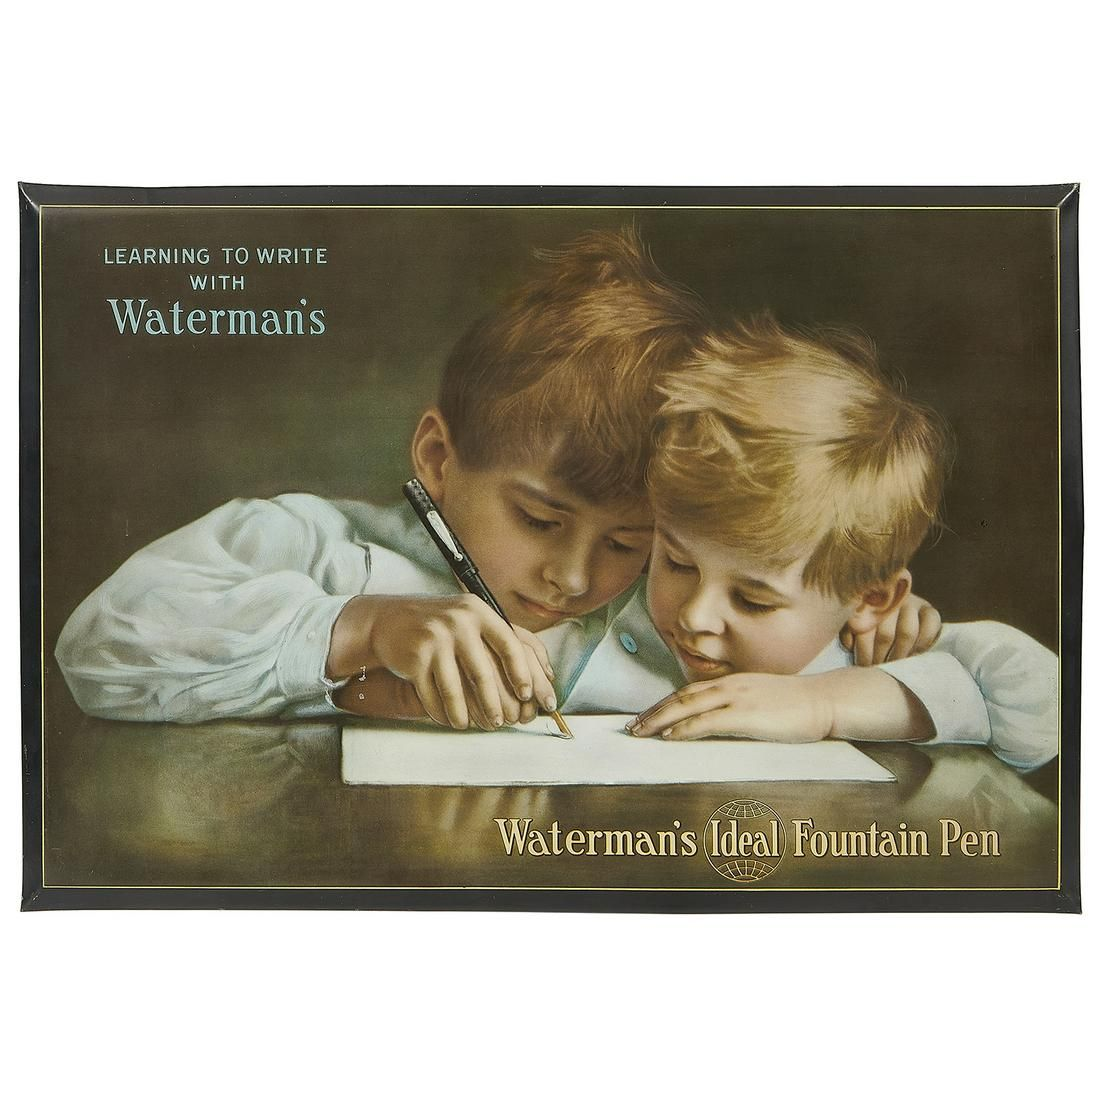 Waterman's Ideal Fountain Pen advertising sign